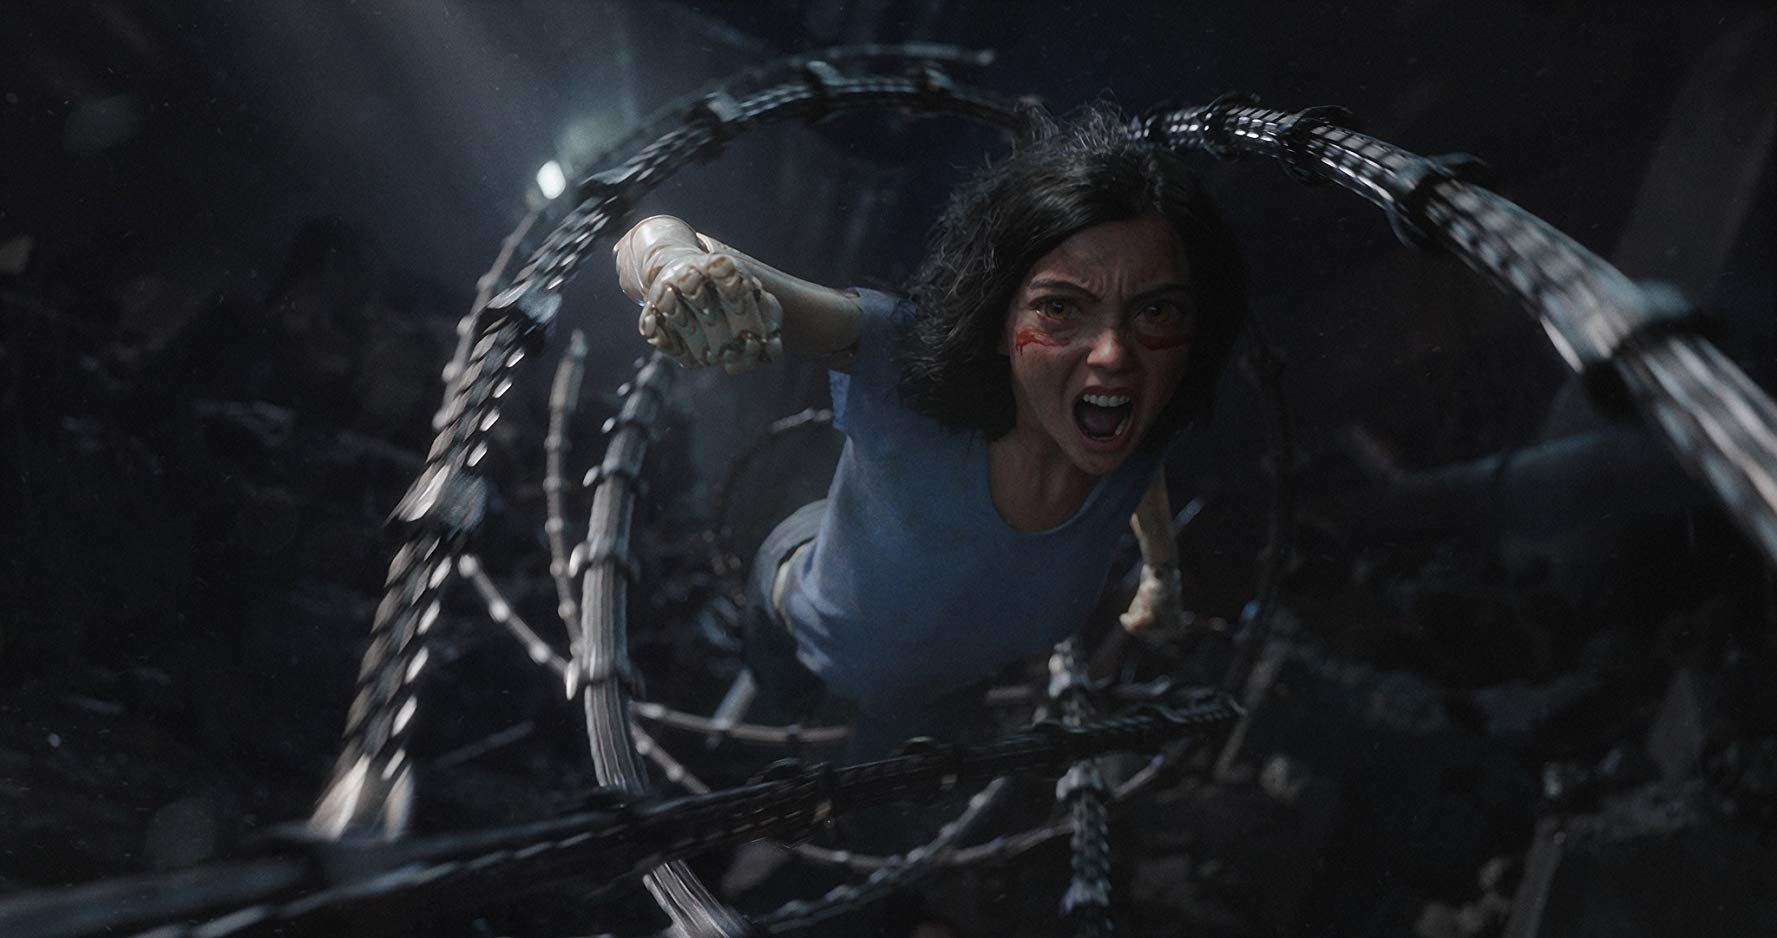 Alita: Battle Angel (2019) - SPOILER-FREE Review